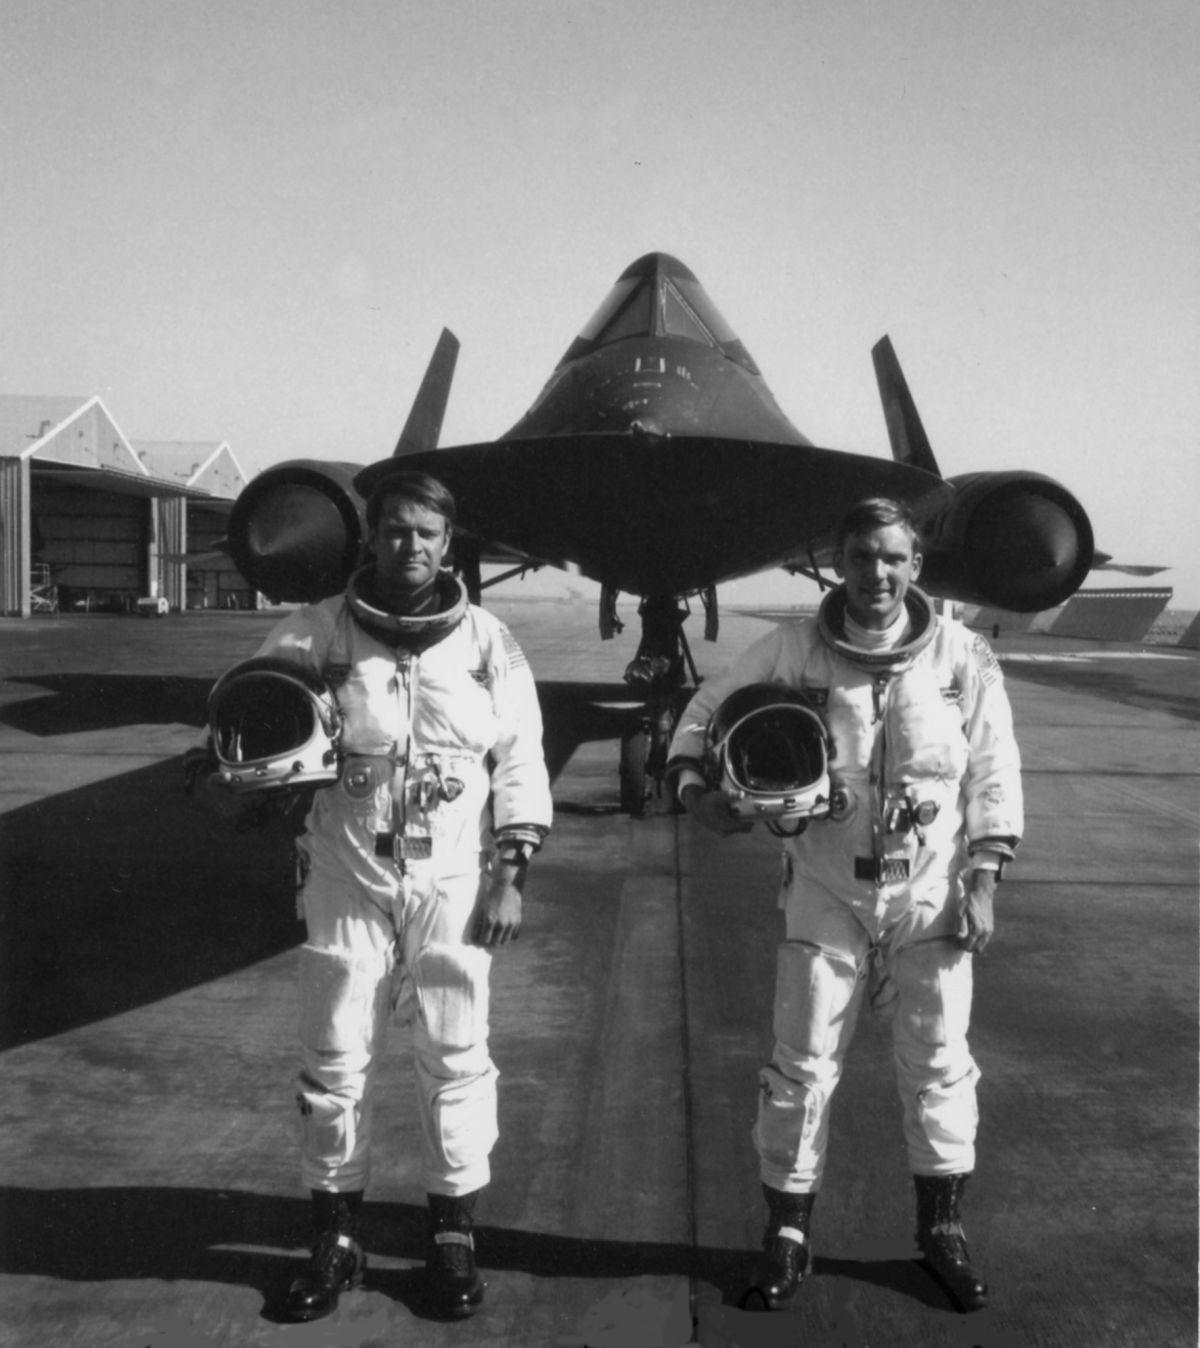 George Morgan and Al Joersz set the record for flying the world's fastest  jet